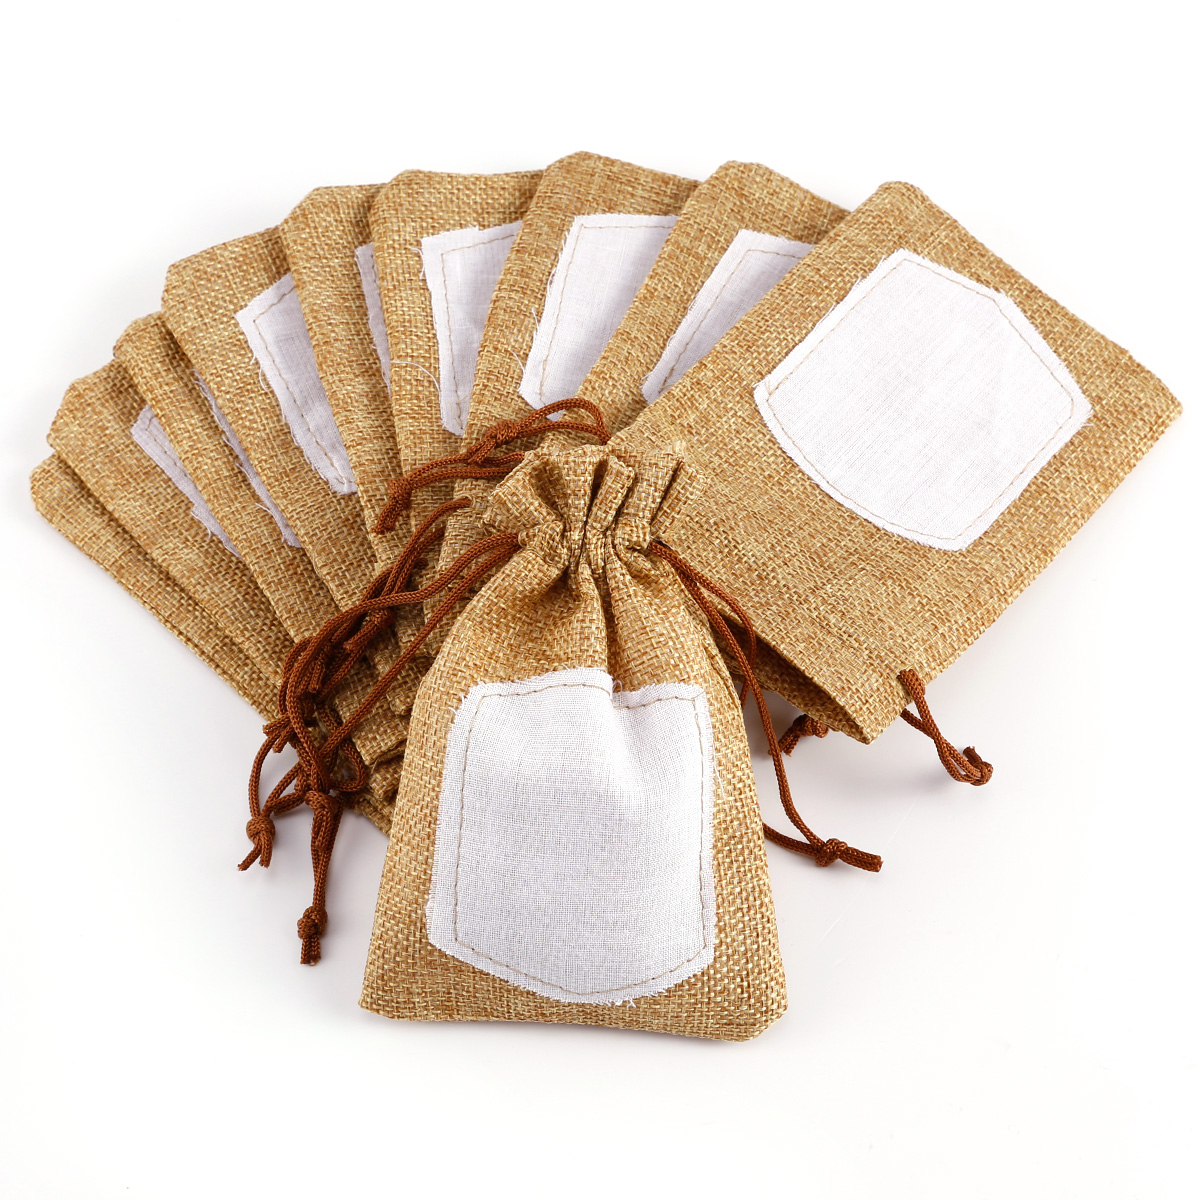 10 20pcs mini hessian burlap favor bags wedding rustic burlap bag ebay. Black Bedroom Furniture Sets. Home Design Ideas